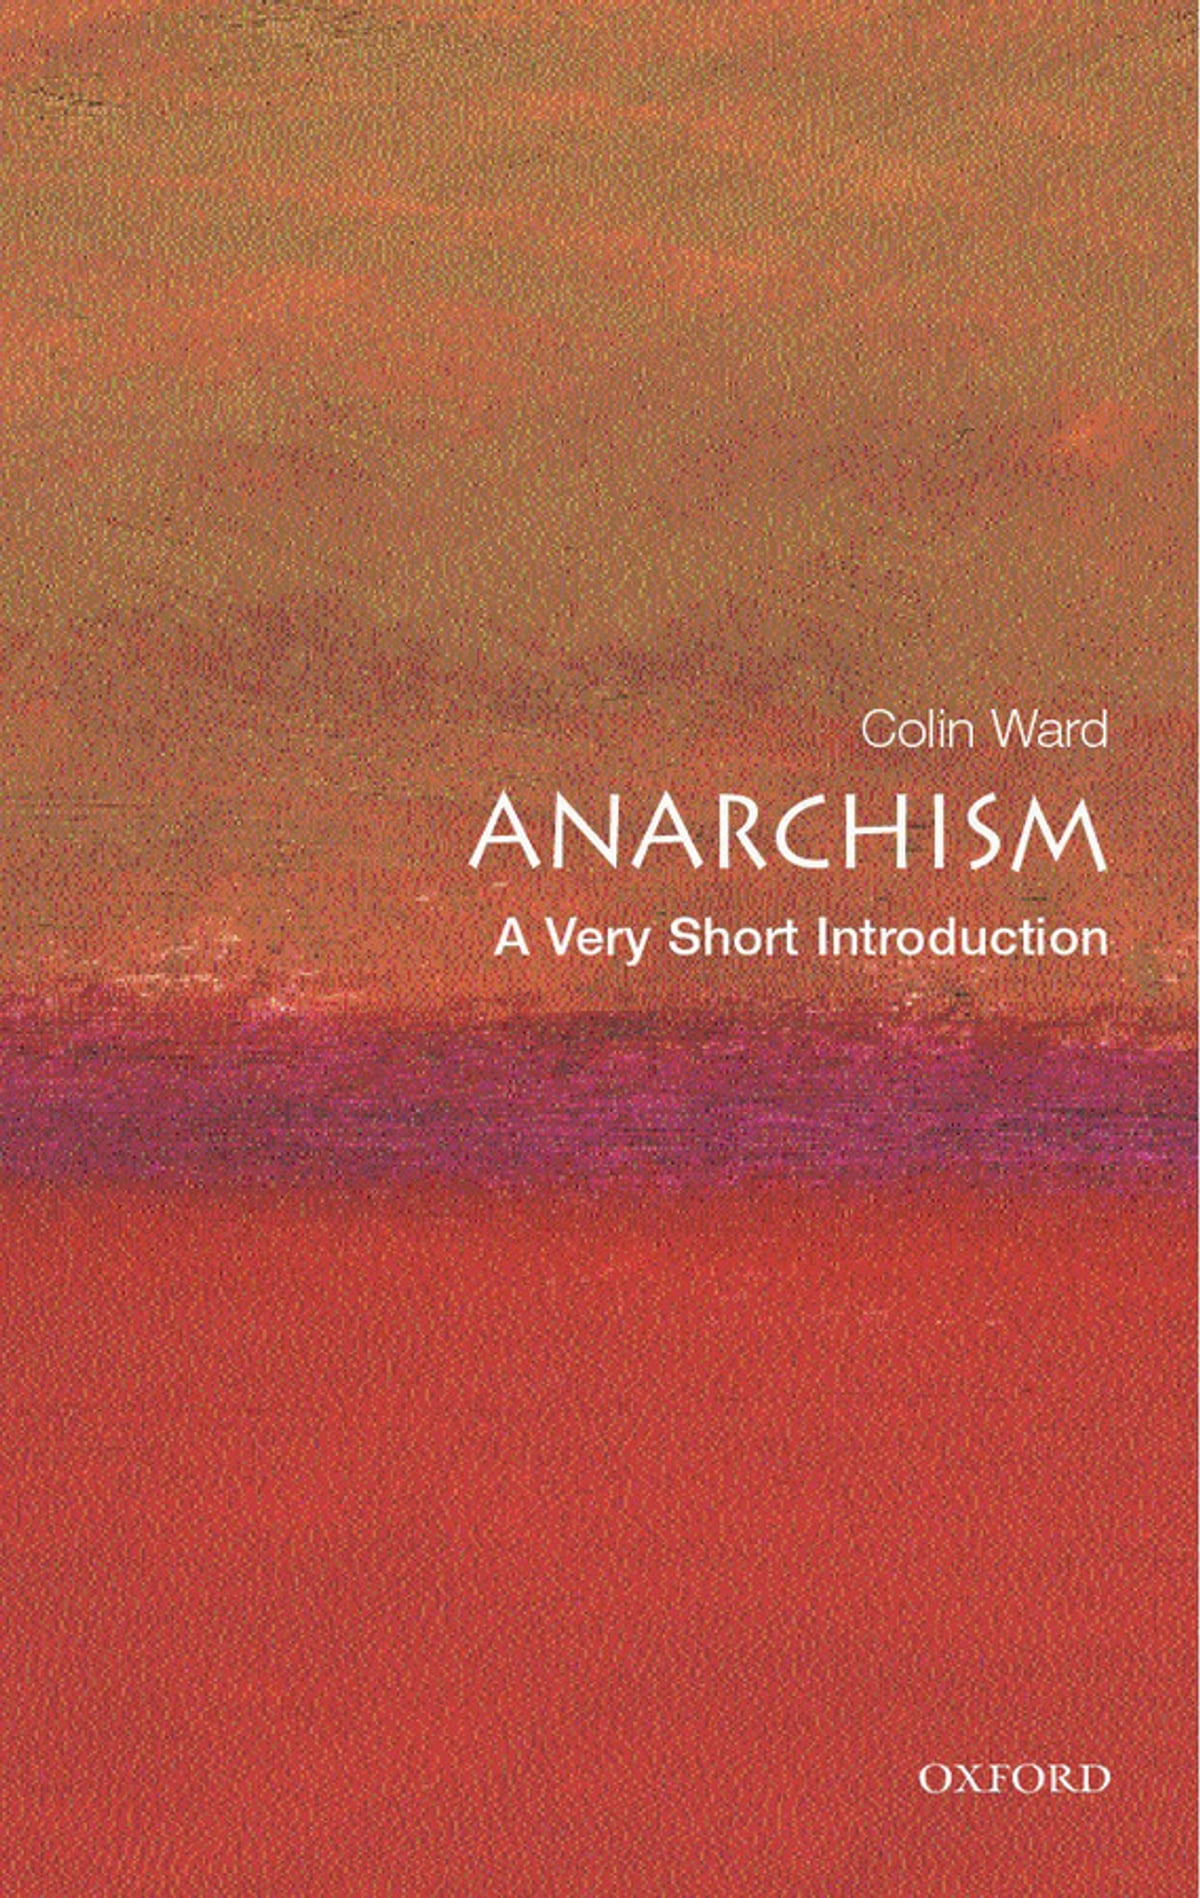 Anarchism a very short introduction ebook by colin ward anarchism a very short introduction ebook by colin ward 9780191577987 rakuten kobo fandeluxe Ebook collections